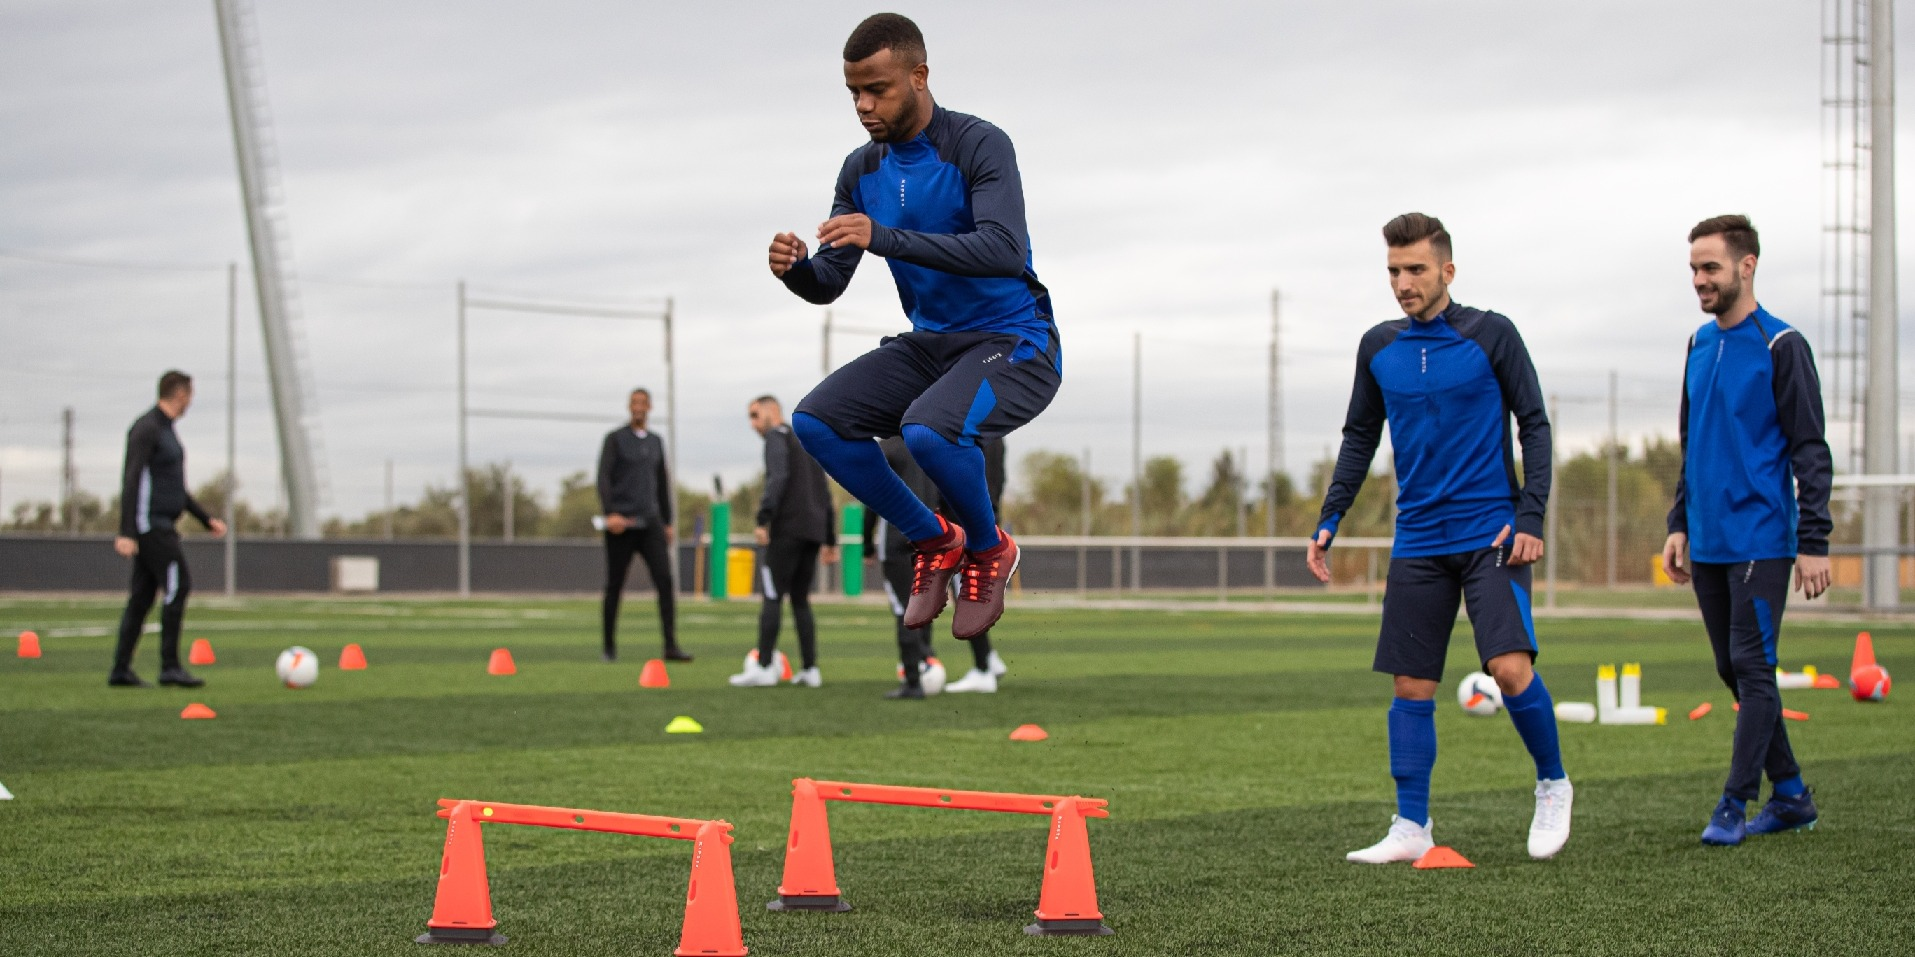 What Nutritional & Physical Training Can Help With Football For Beginners?